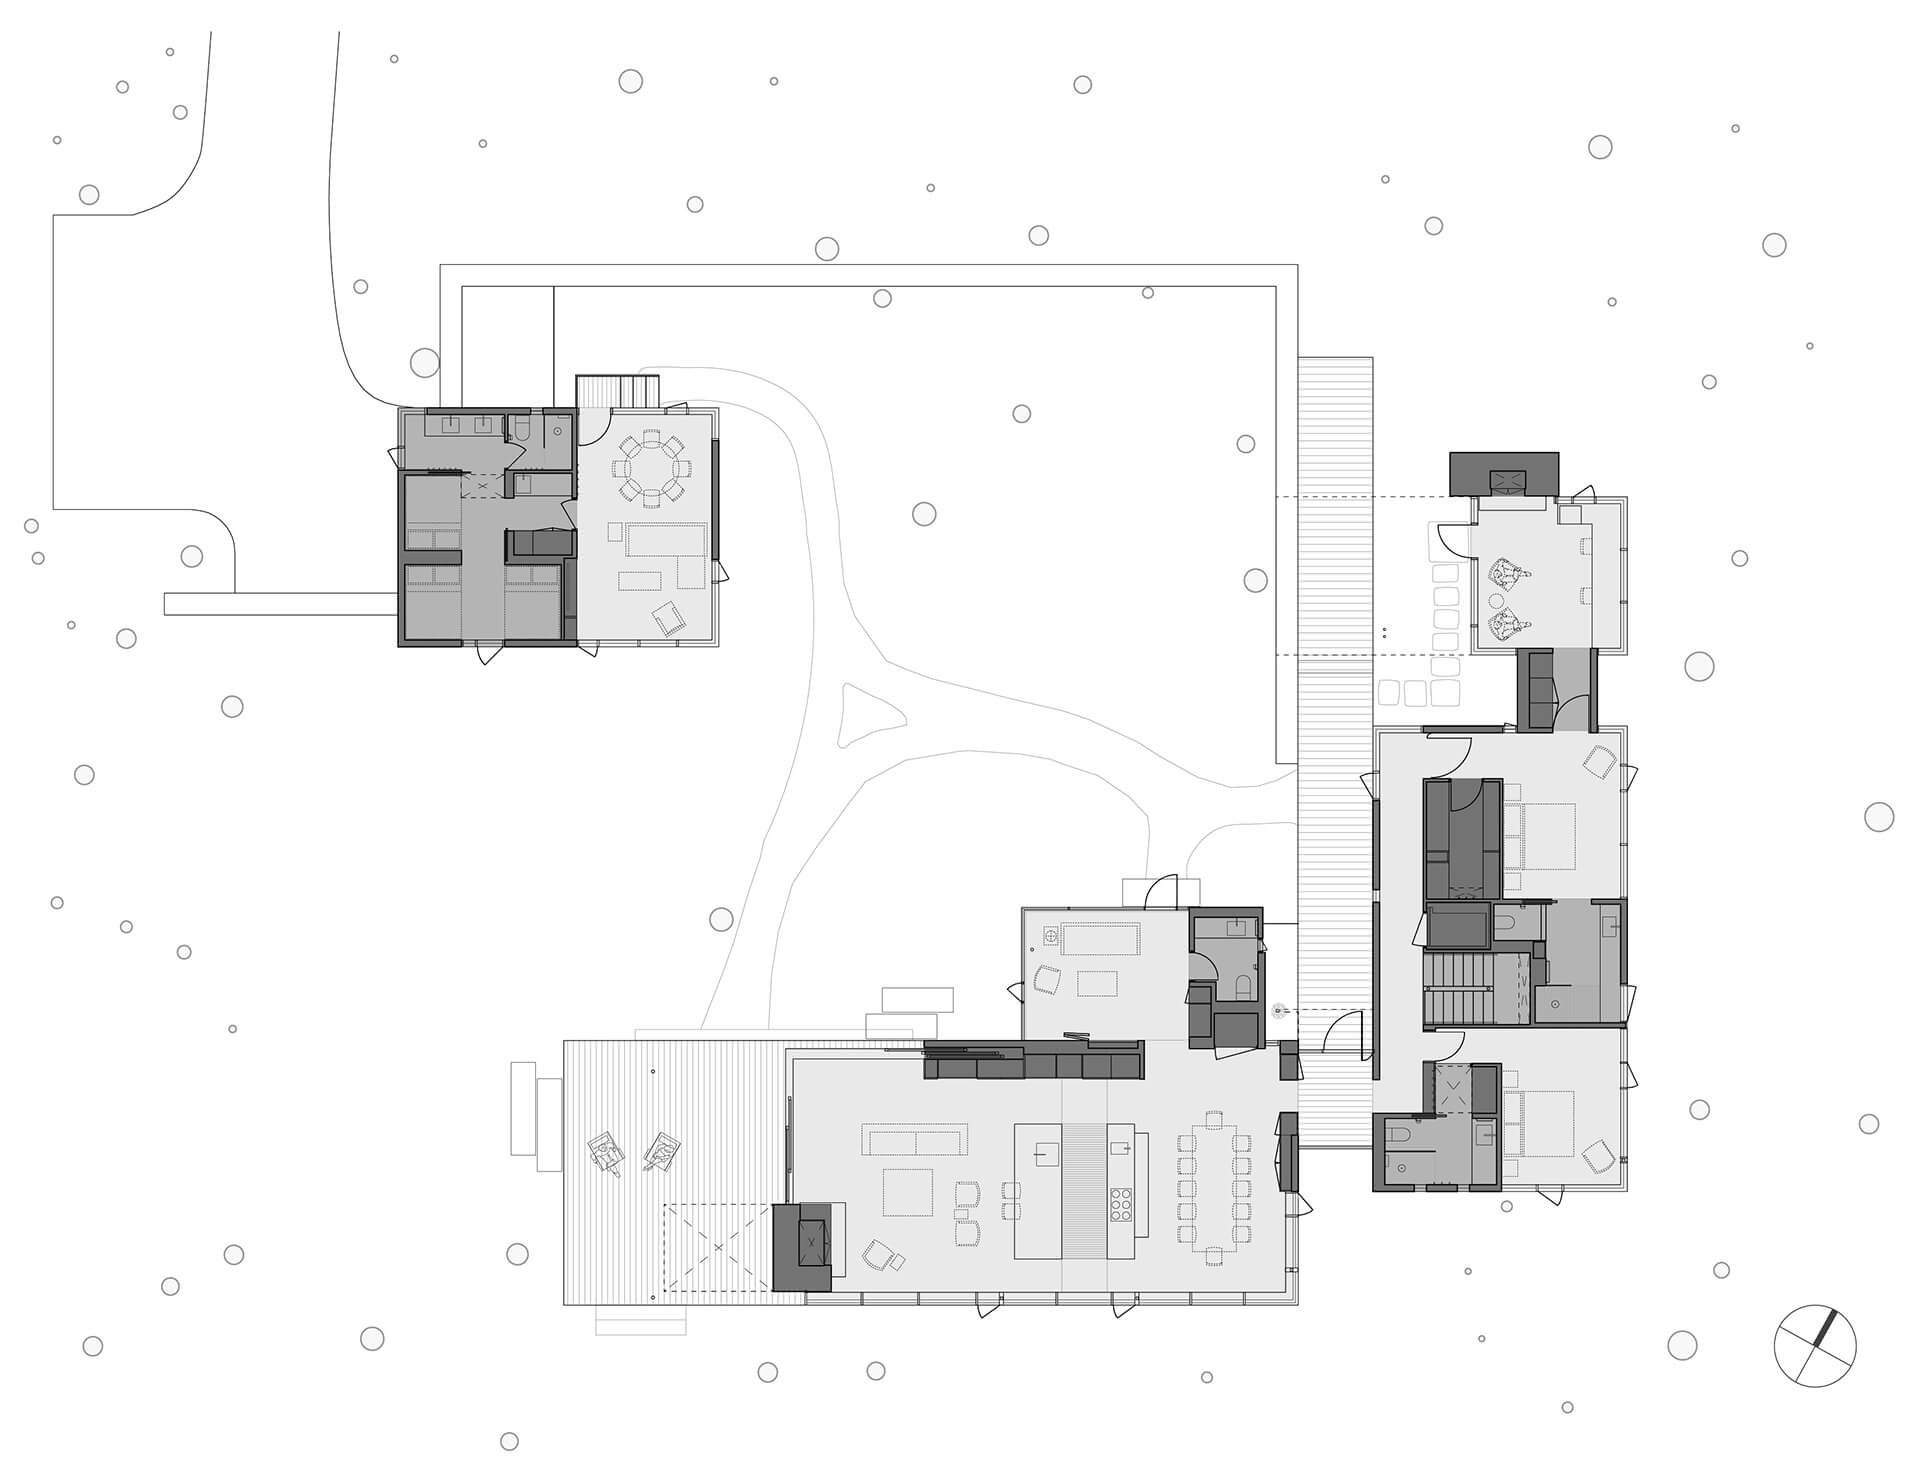 Floor plan illustrating how courtyards connect the three distinct volumes | Whidbey Island Farm Retreat by Mwworks | STIRworld